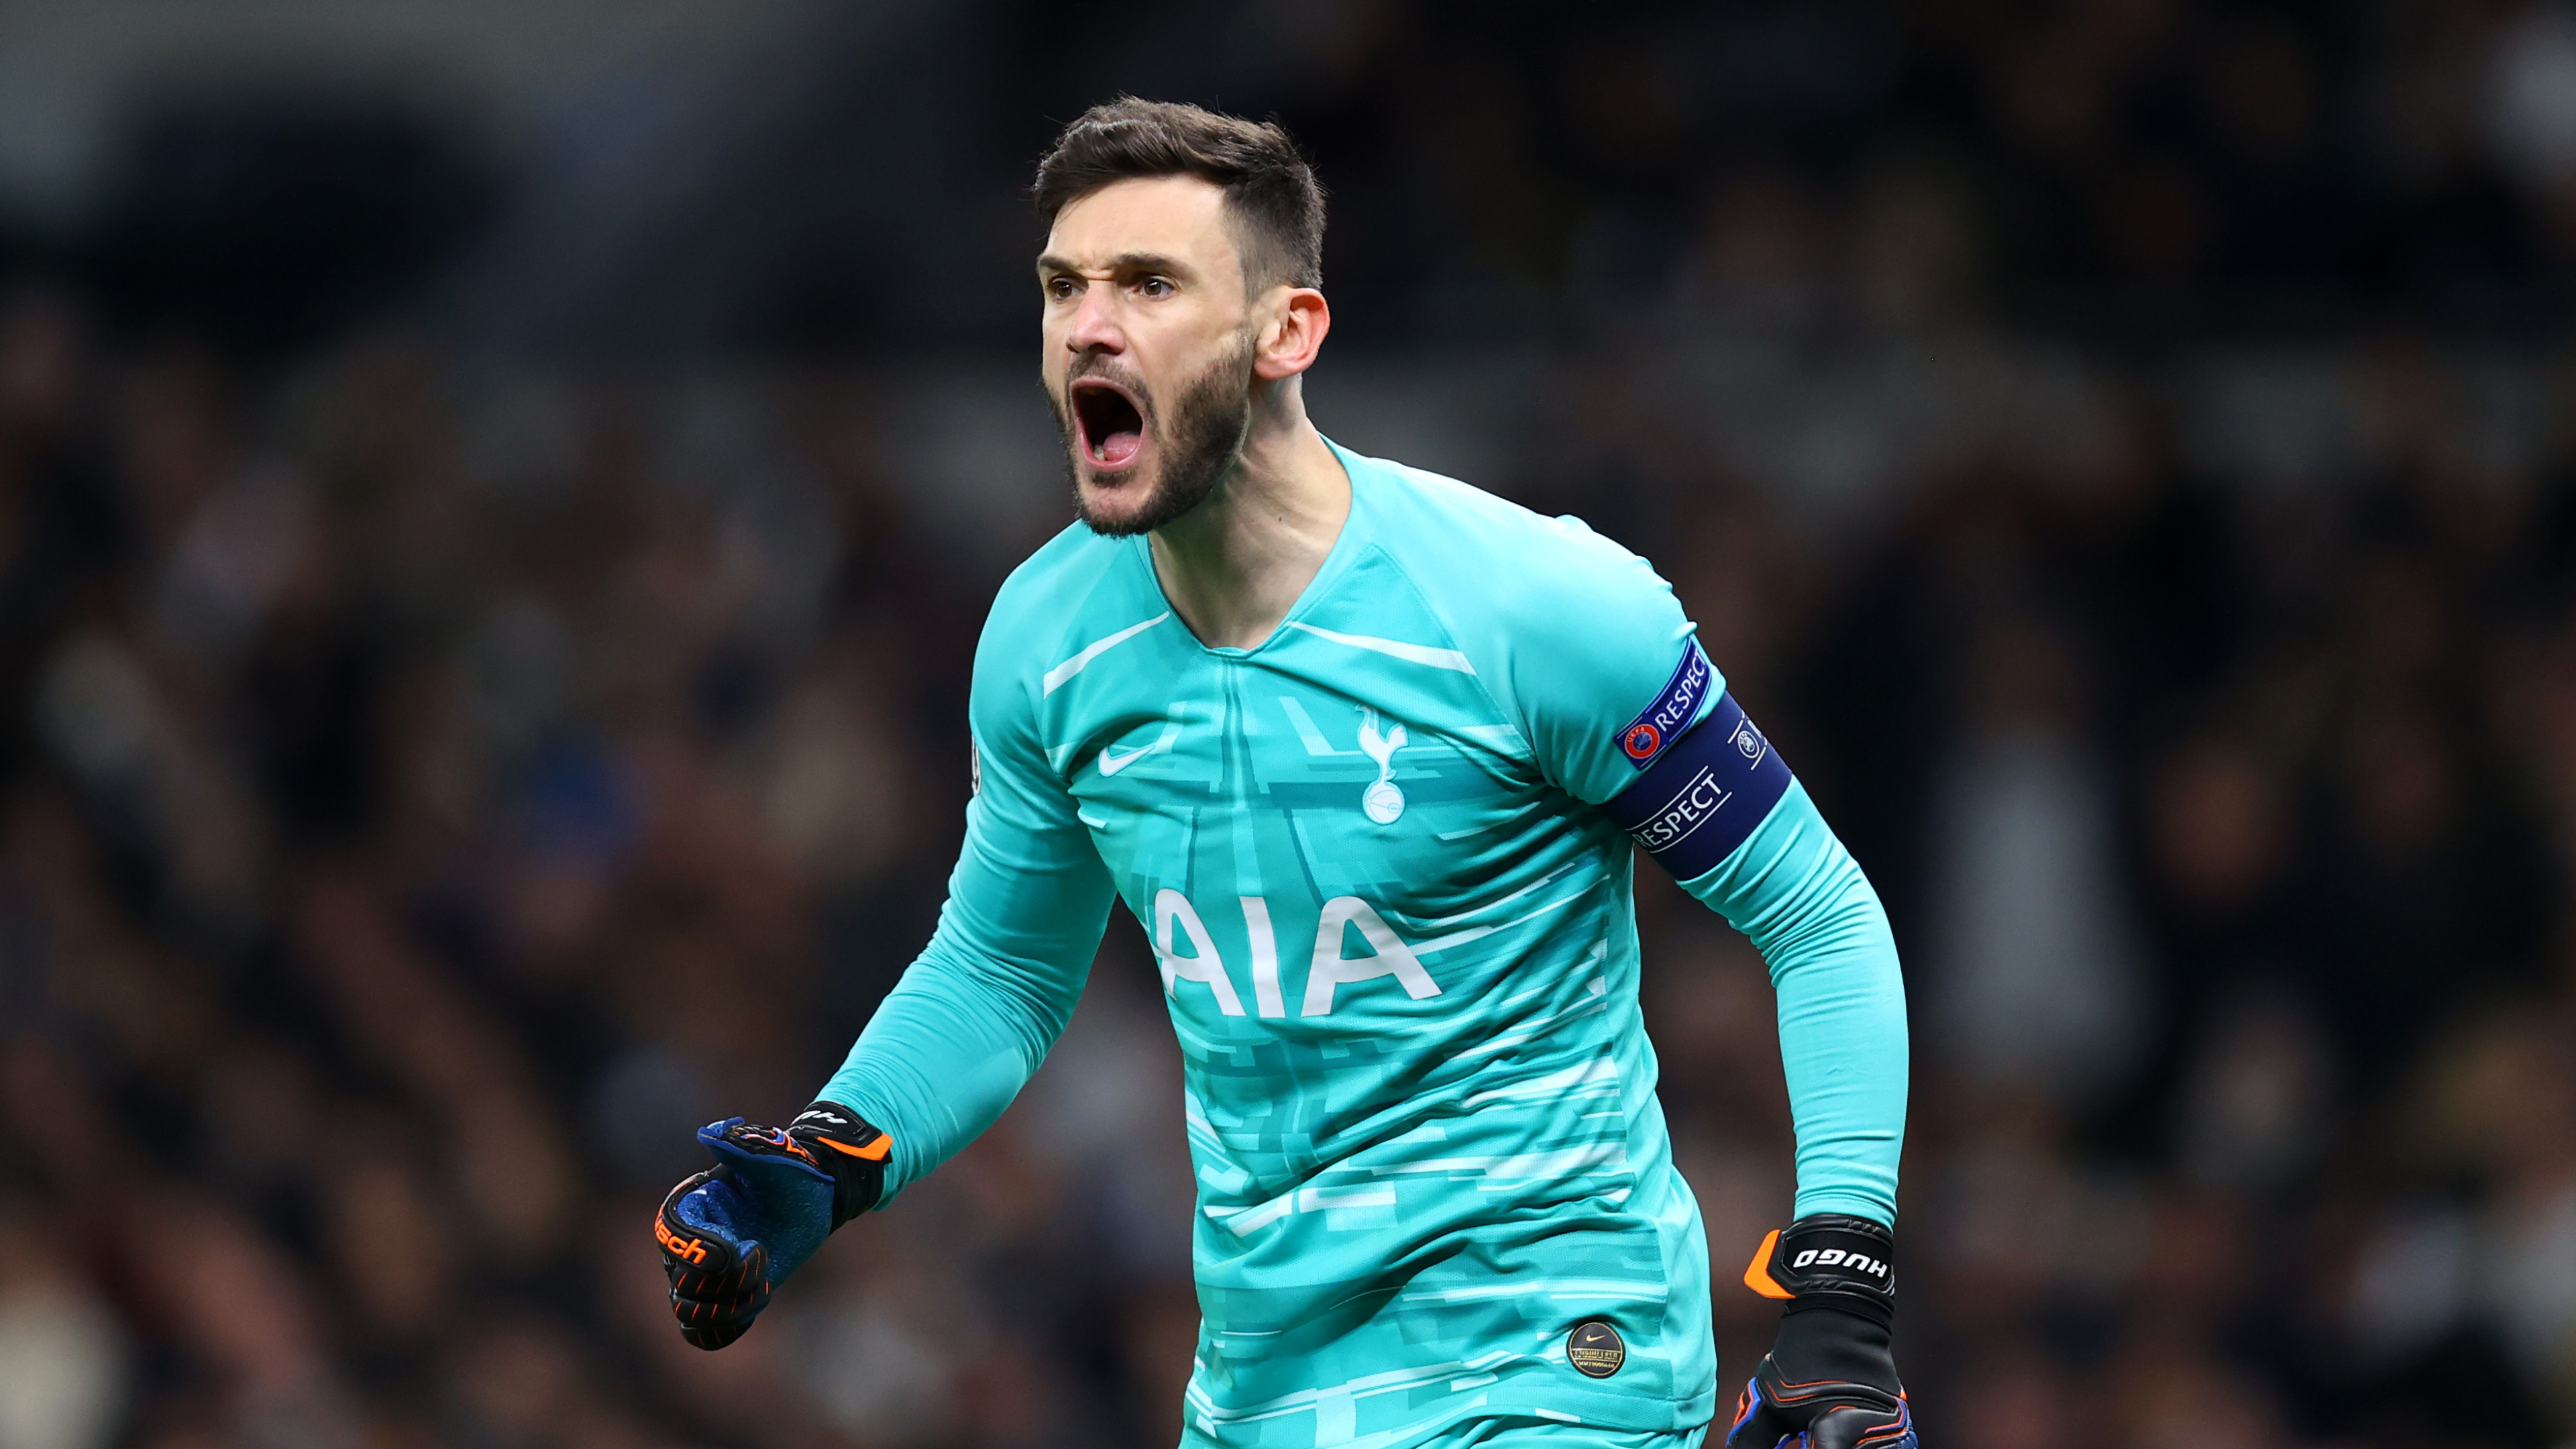 All the players were angry' - Lloris admits Spurs need to show more after Burnley draw   Goal.com